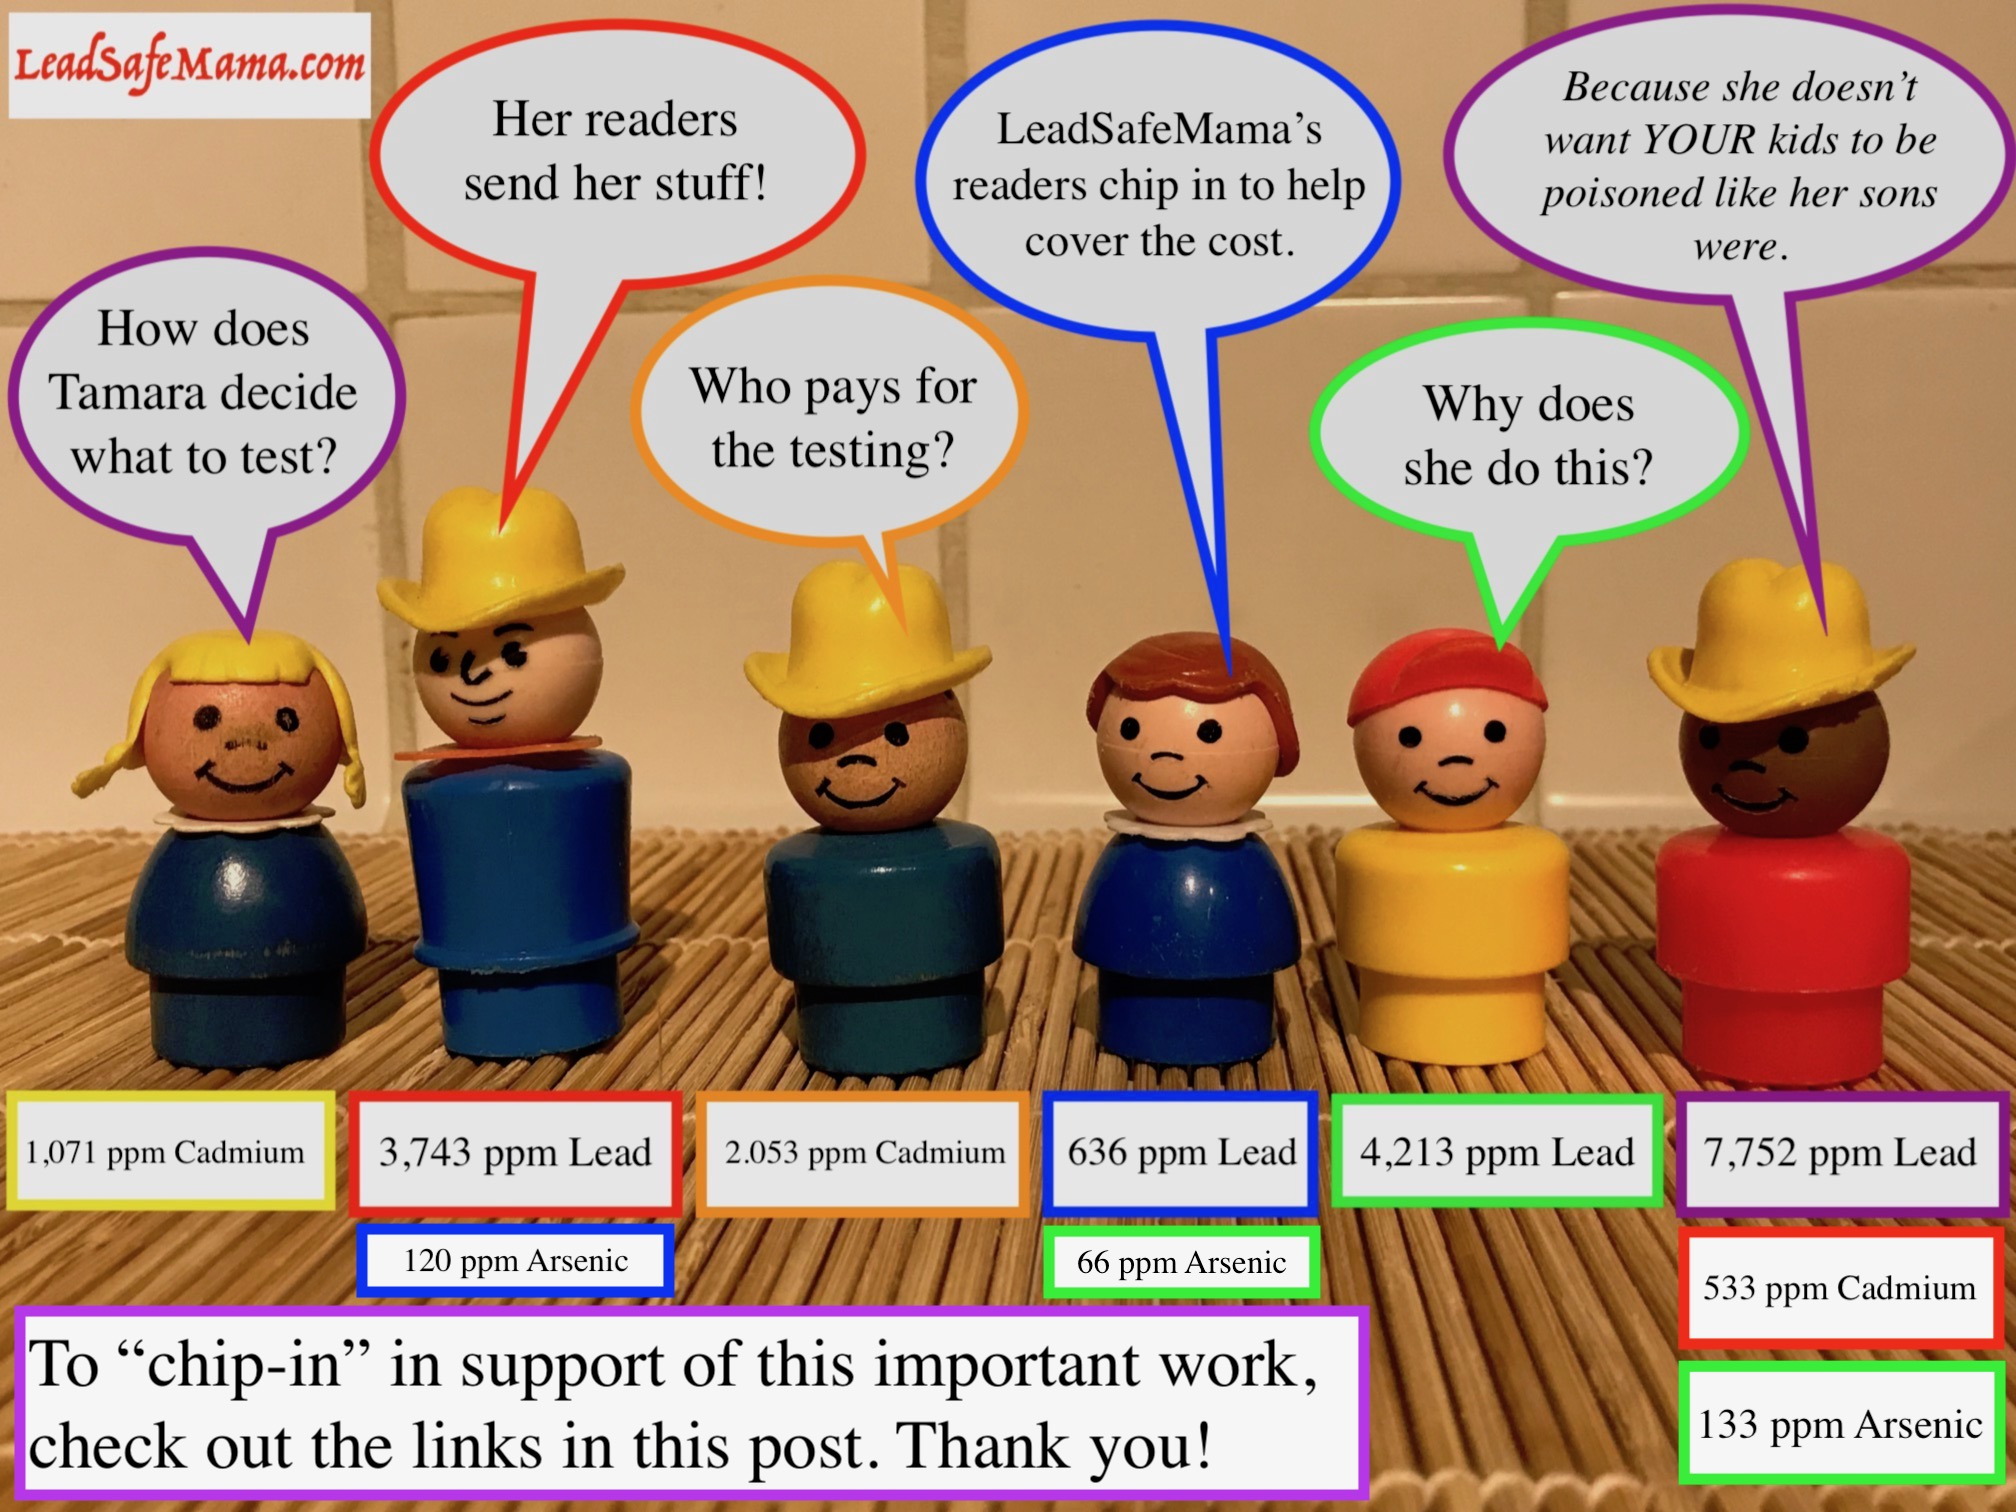 Vintage Fisher Price Little People + Why Does Tamara Do This?